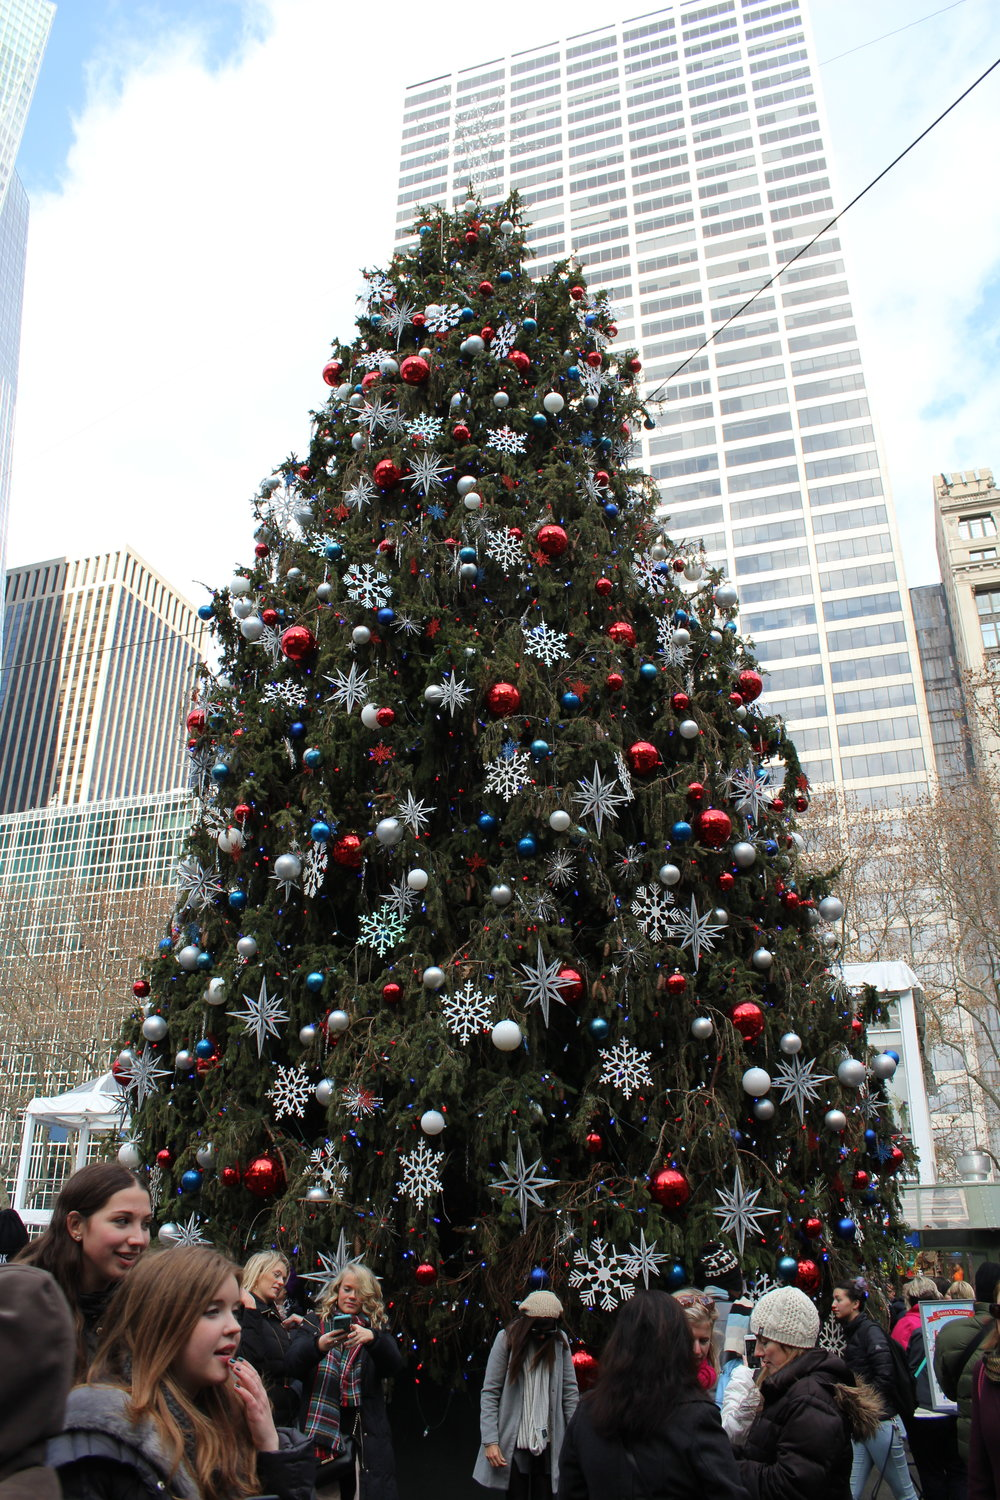 Bryant Park Winter Village Christmas Tree